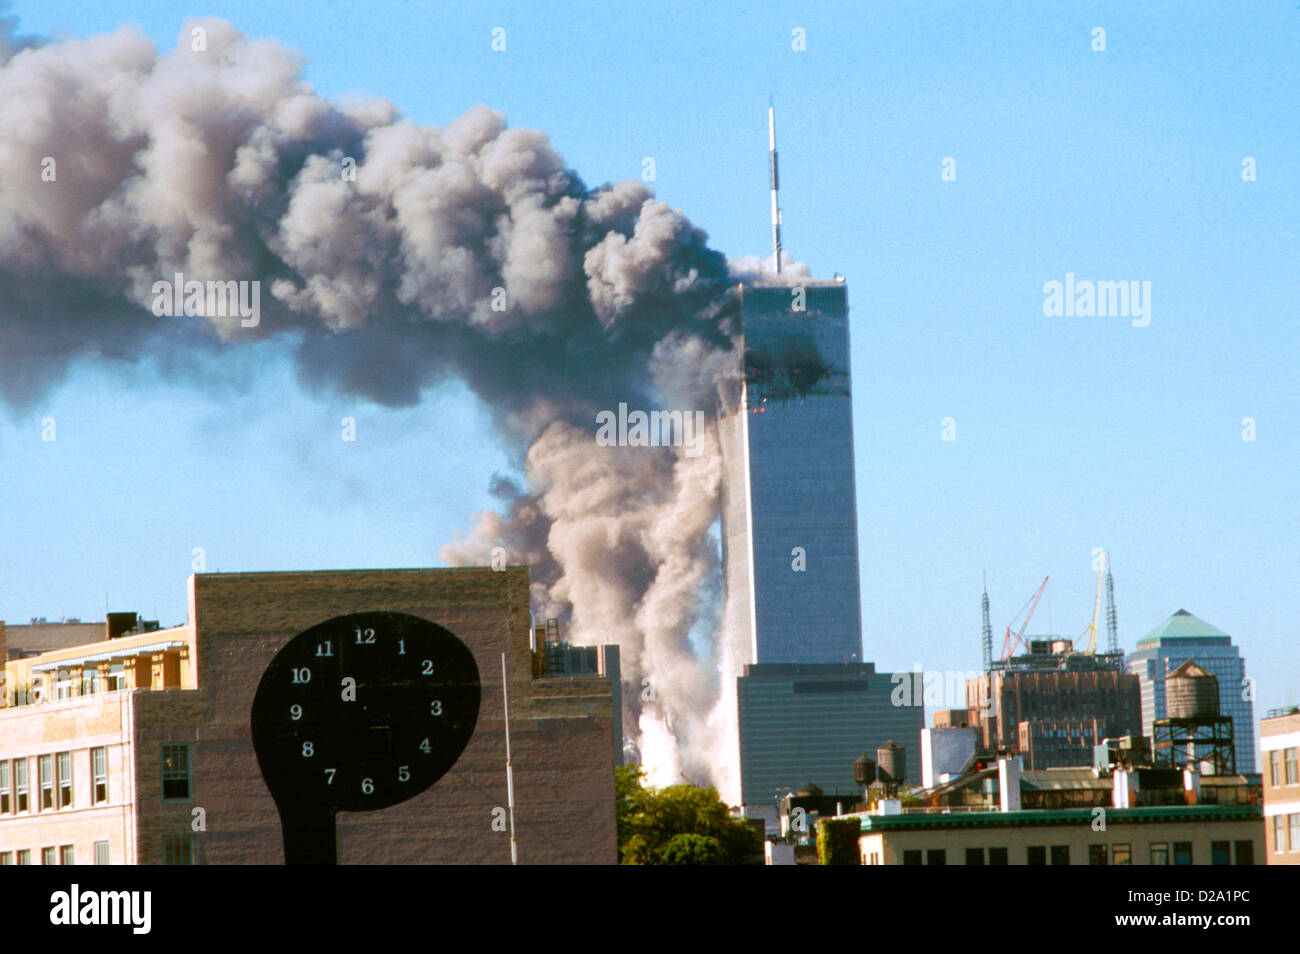 New York City, 9/11/01. World Trade Center Attack. - Stock Image